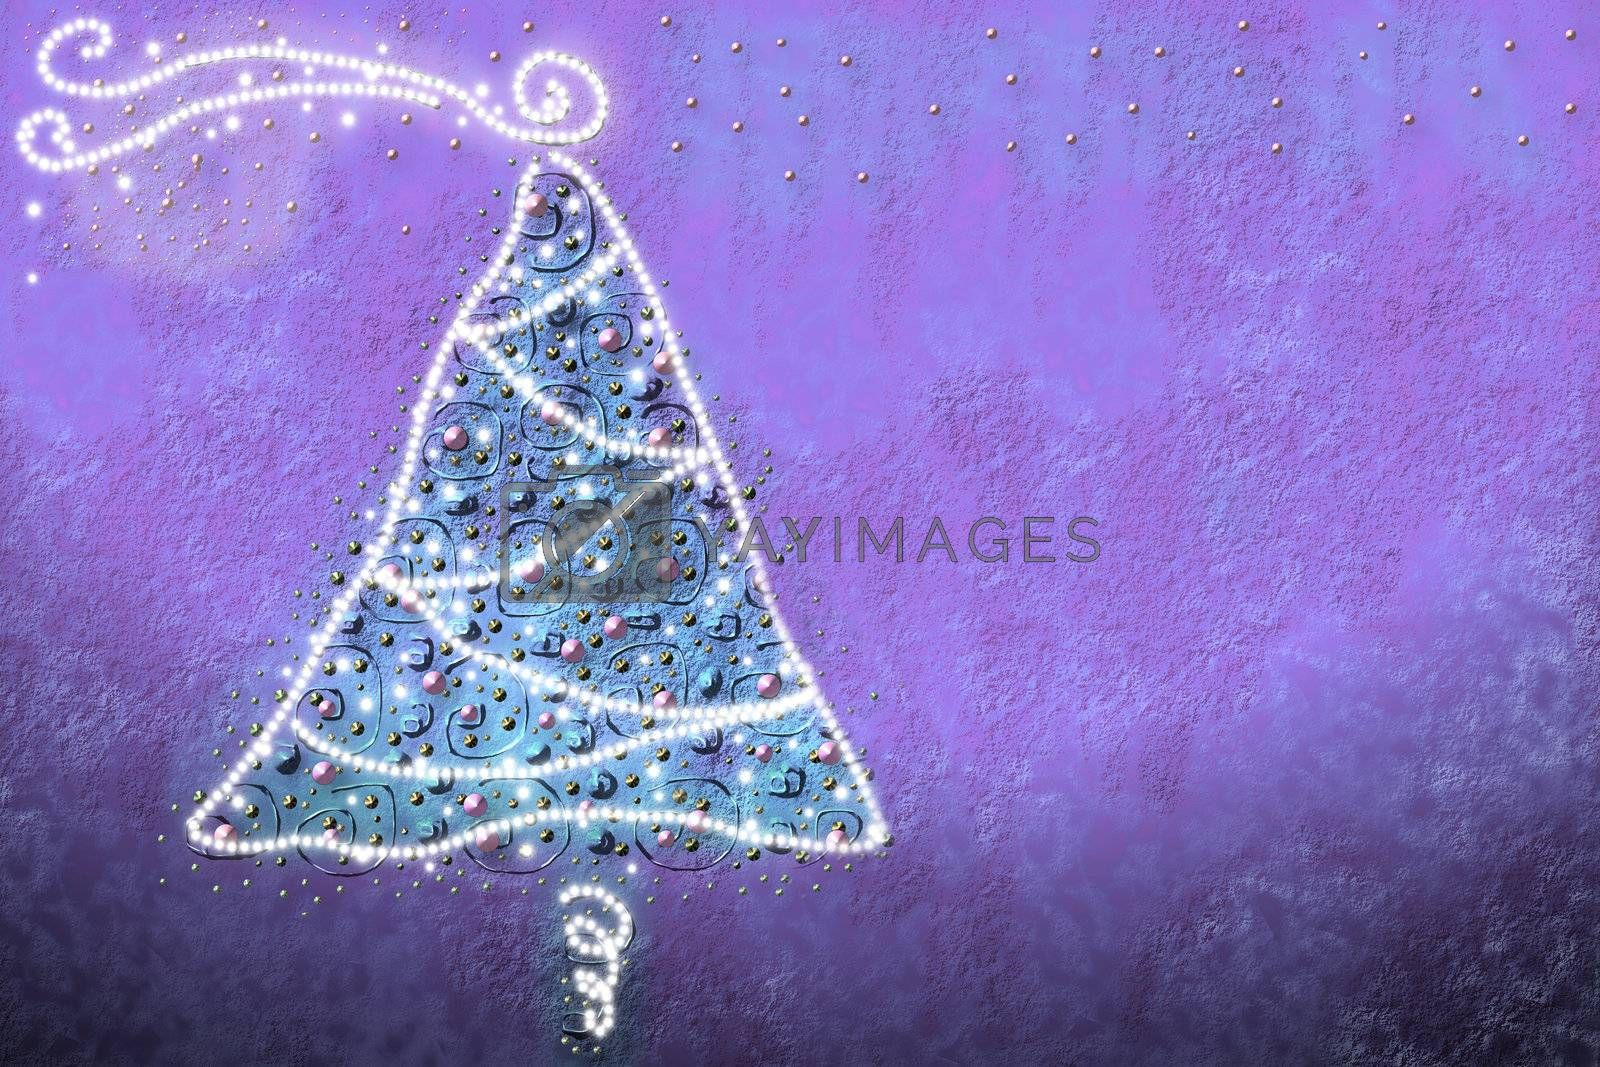 drawing by Christmas tree with baubles and lights